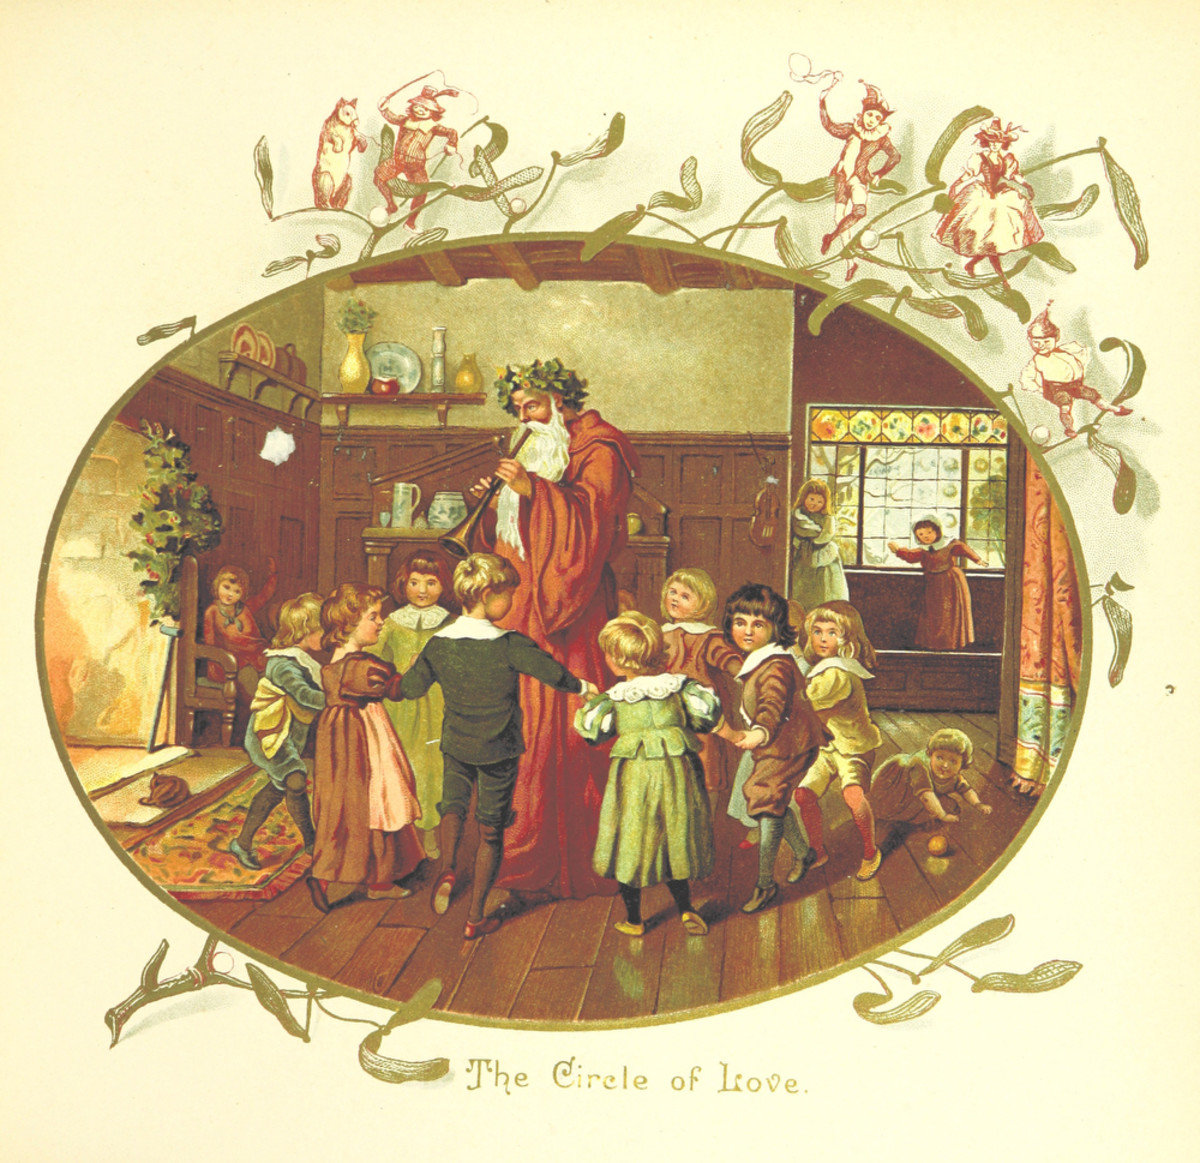 Christmas Carols are a very old tradition of Christmas, and some carols were passed down orally over the centuries.